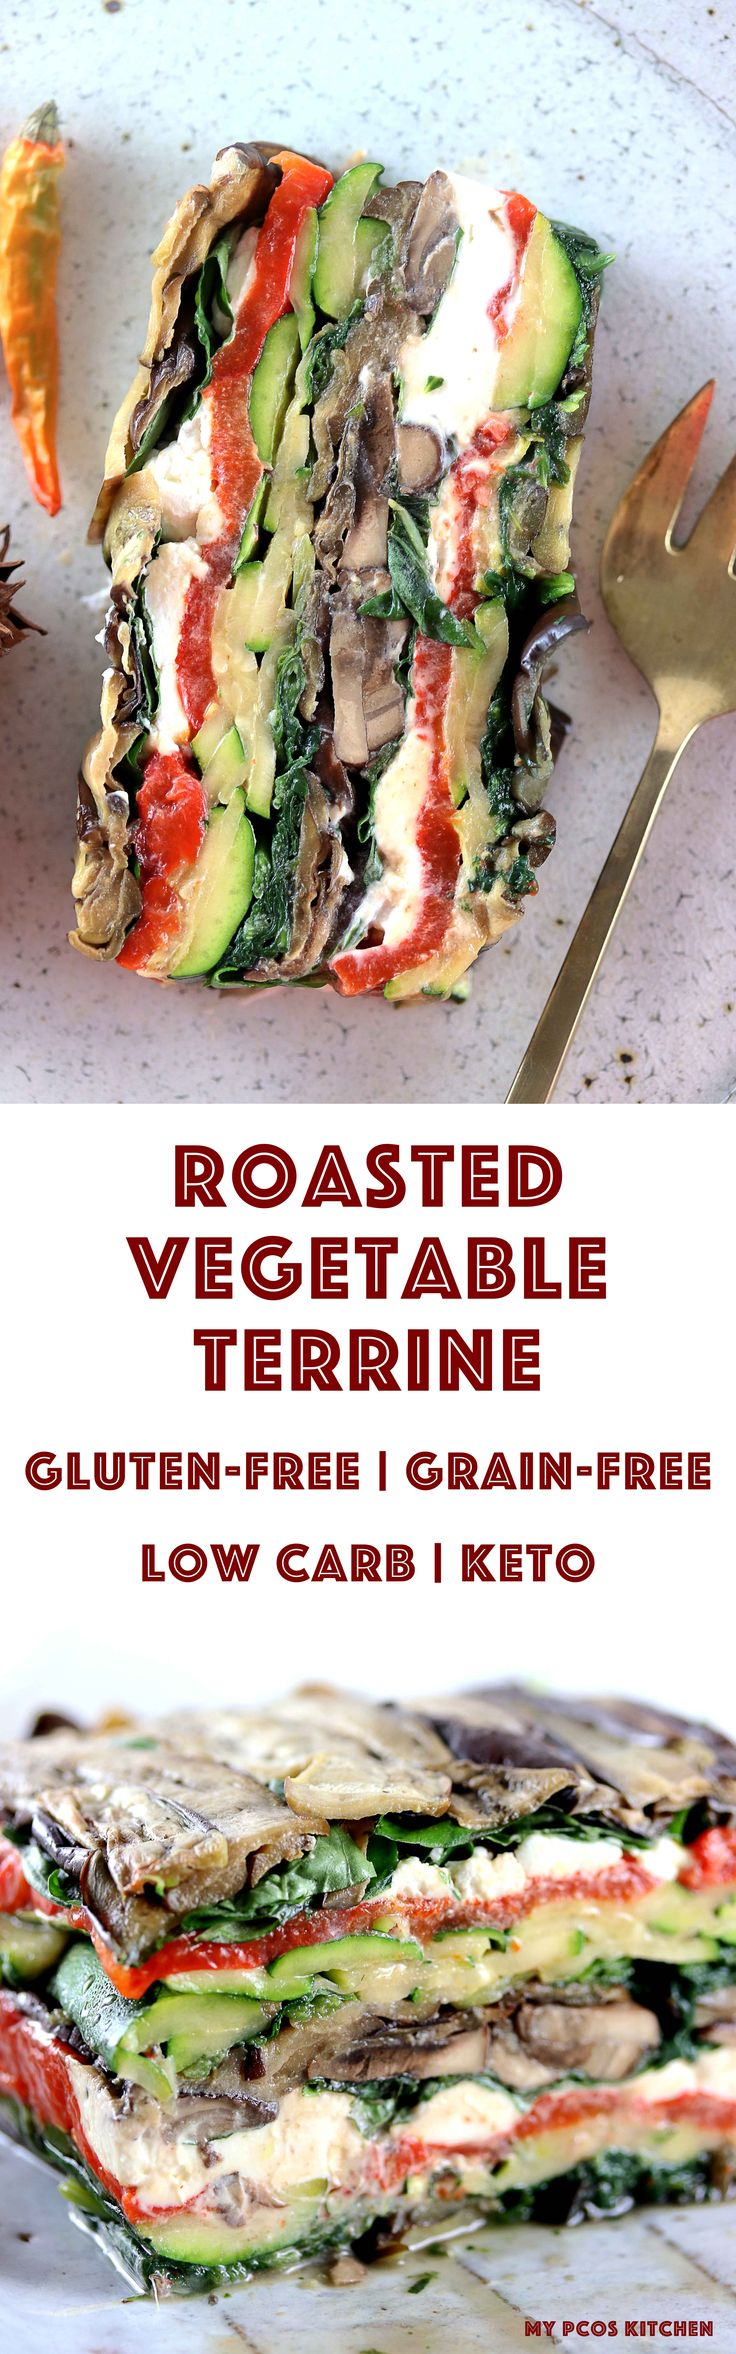 My PCOS Kitchen - Roasted Vegetable Terrine - Grilled vegetables stacked on top of one another with creamy goat cheese! Primal, keto, low carb and gluten-free! #keto #primal #lowcarb #terrine #vegetables via @mypcoskitchen